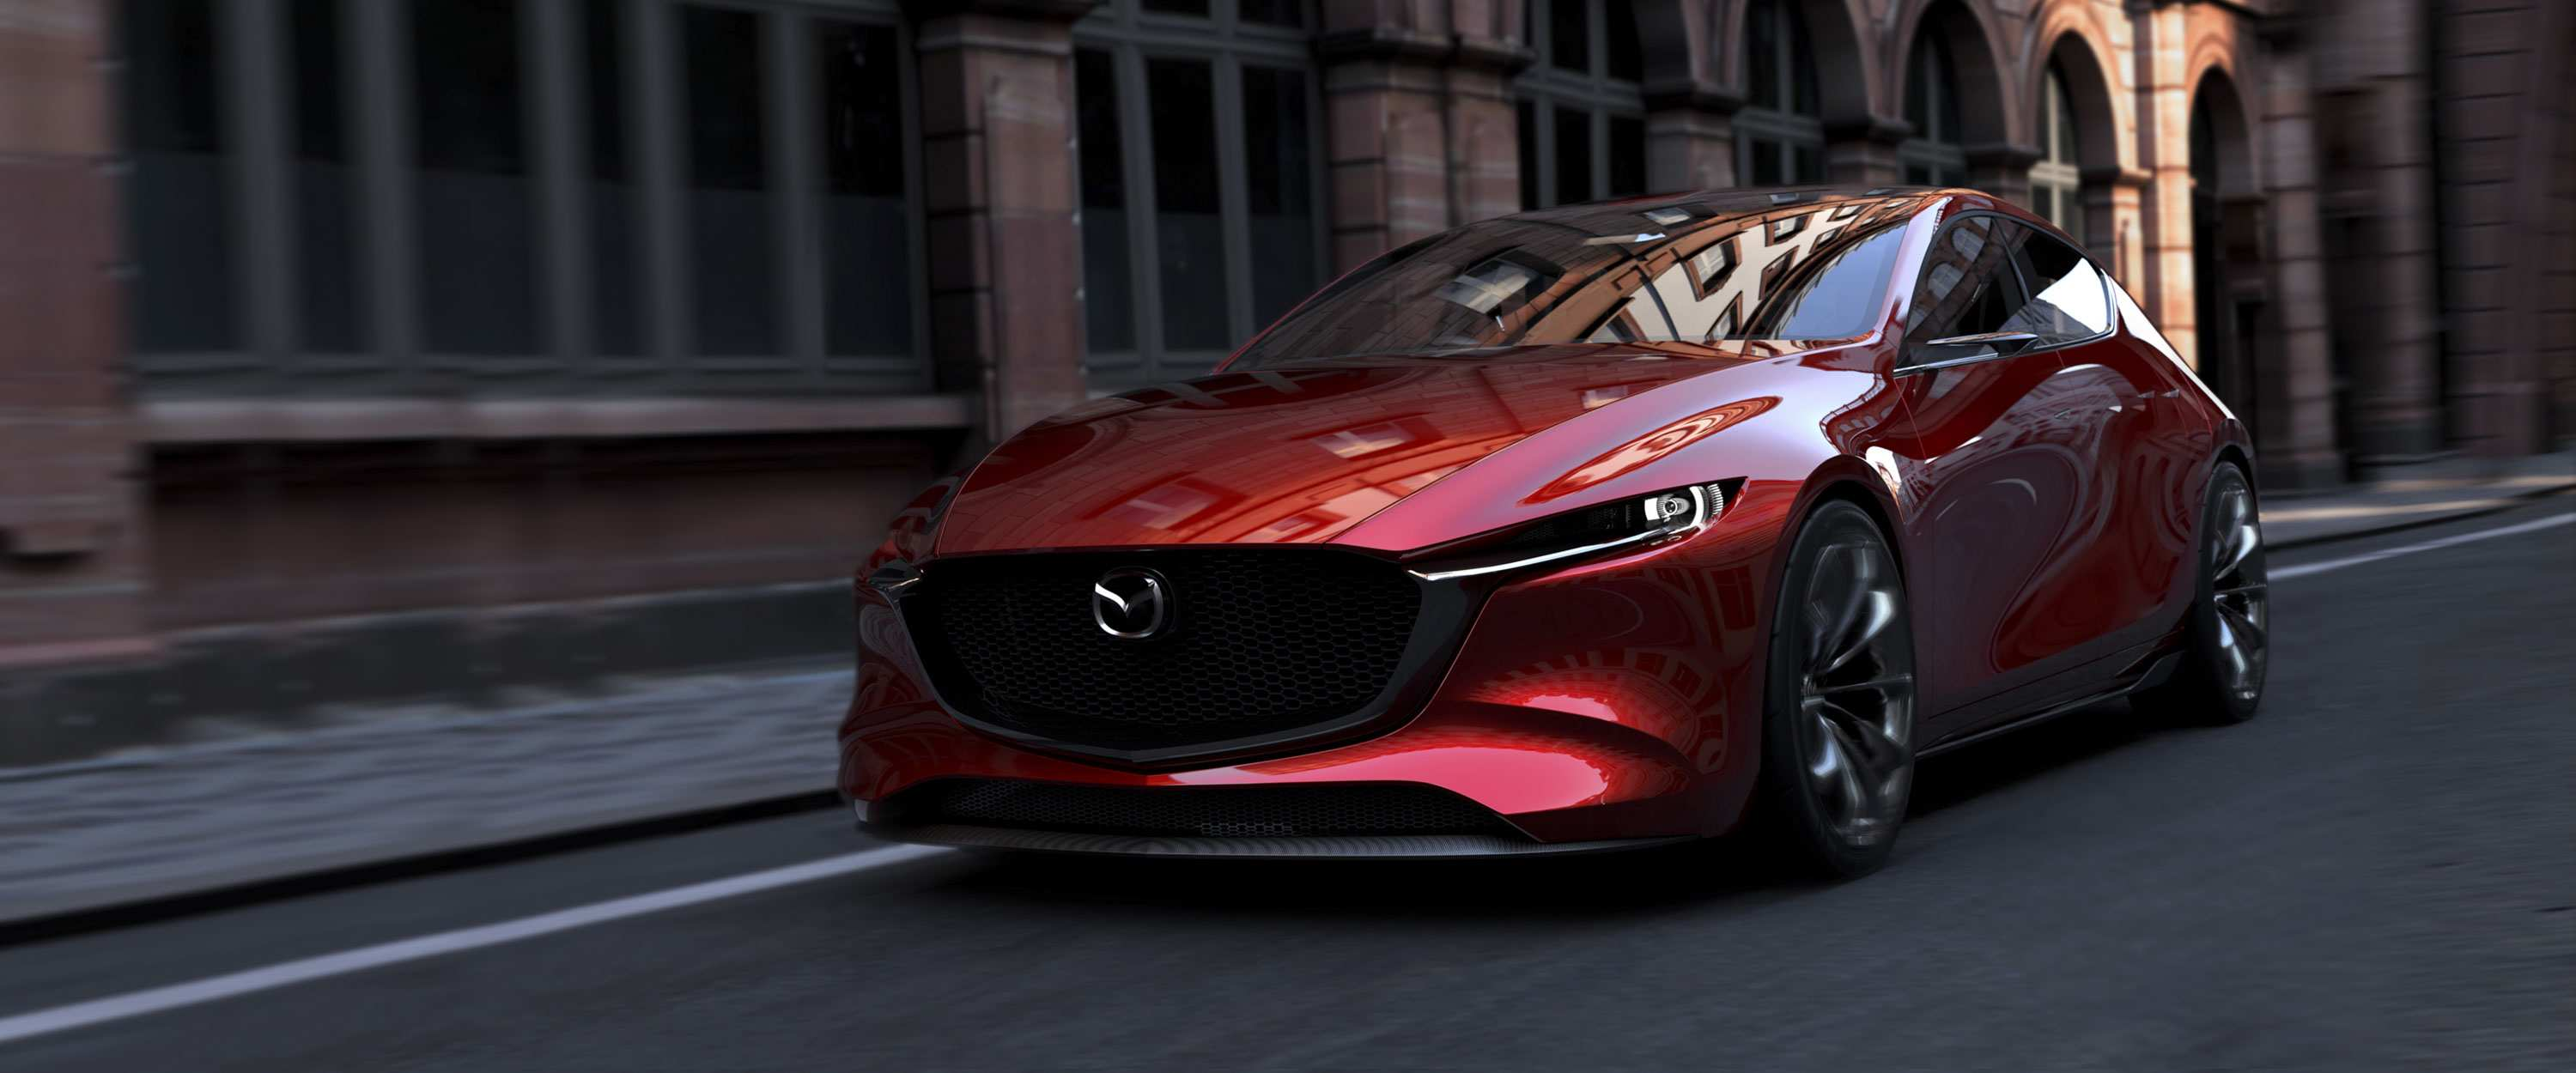 68 Gallery of Future Mazda Cars 2020 Redesign and Concept with Future Mazda Cars 2020